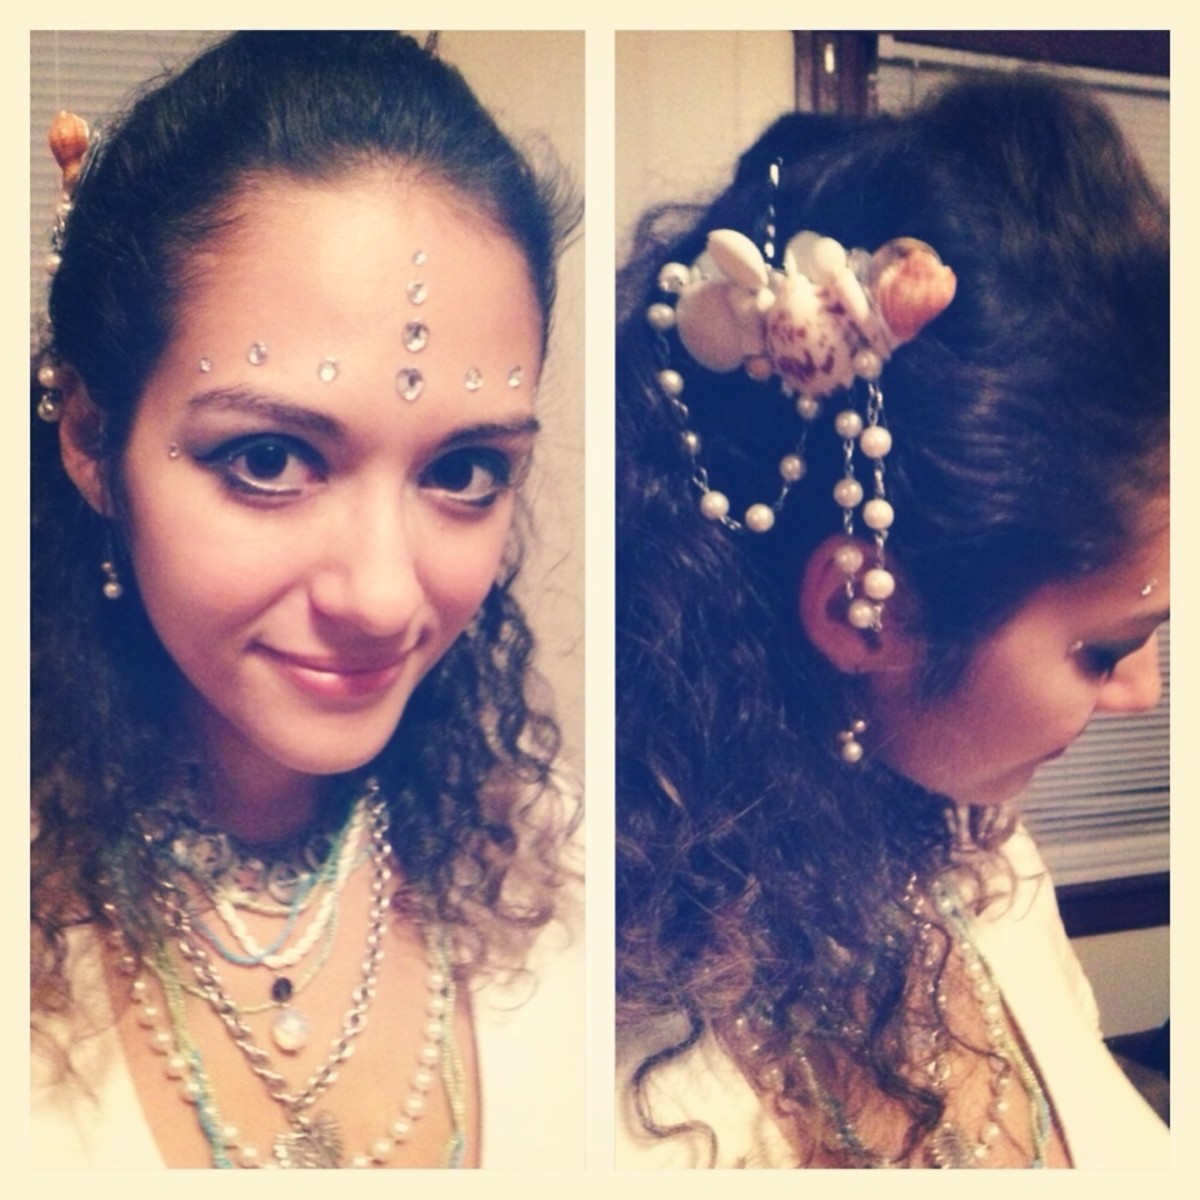 Shell barrette made with tiny mirrors, shells, a foe pearl necklace, and hot glue.  Layered accessories pillaged from sunken ships and rhinestone scales.